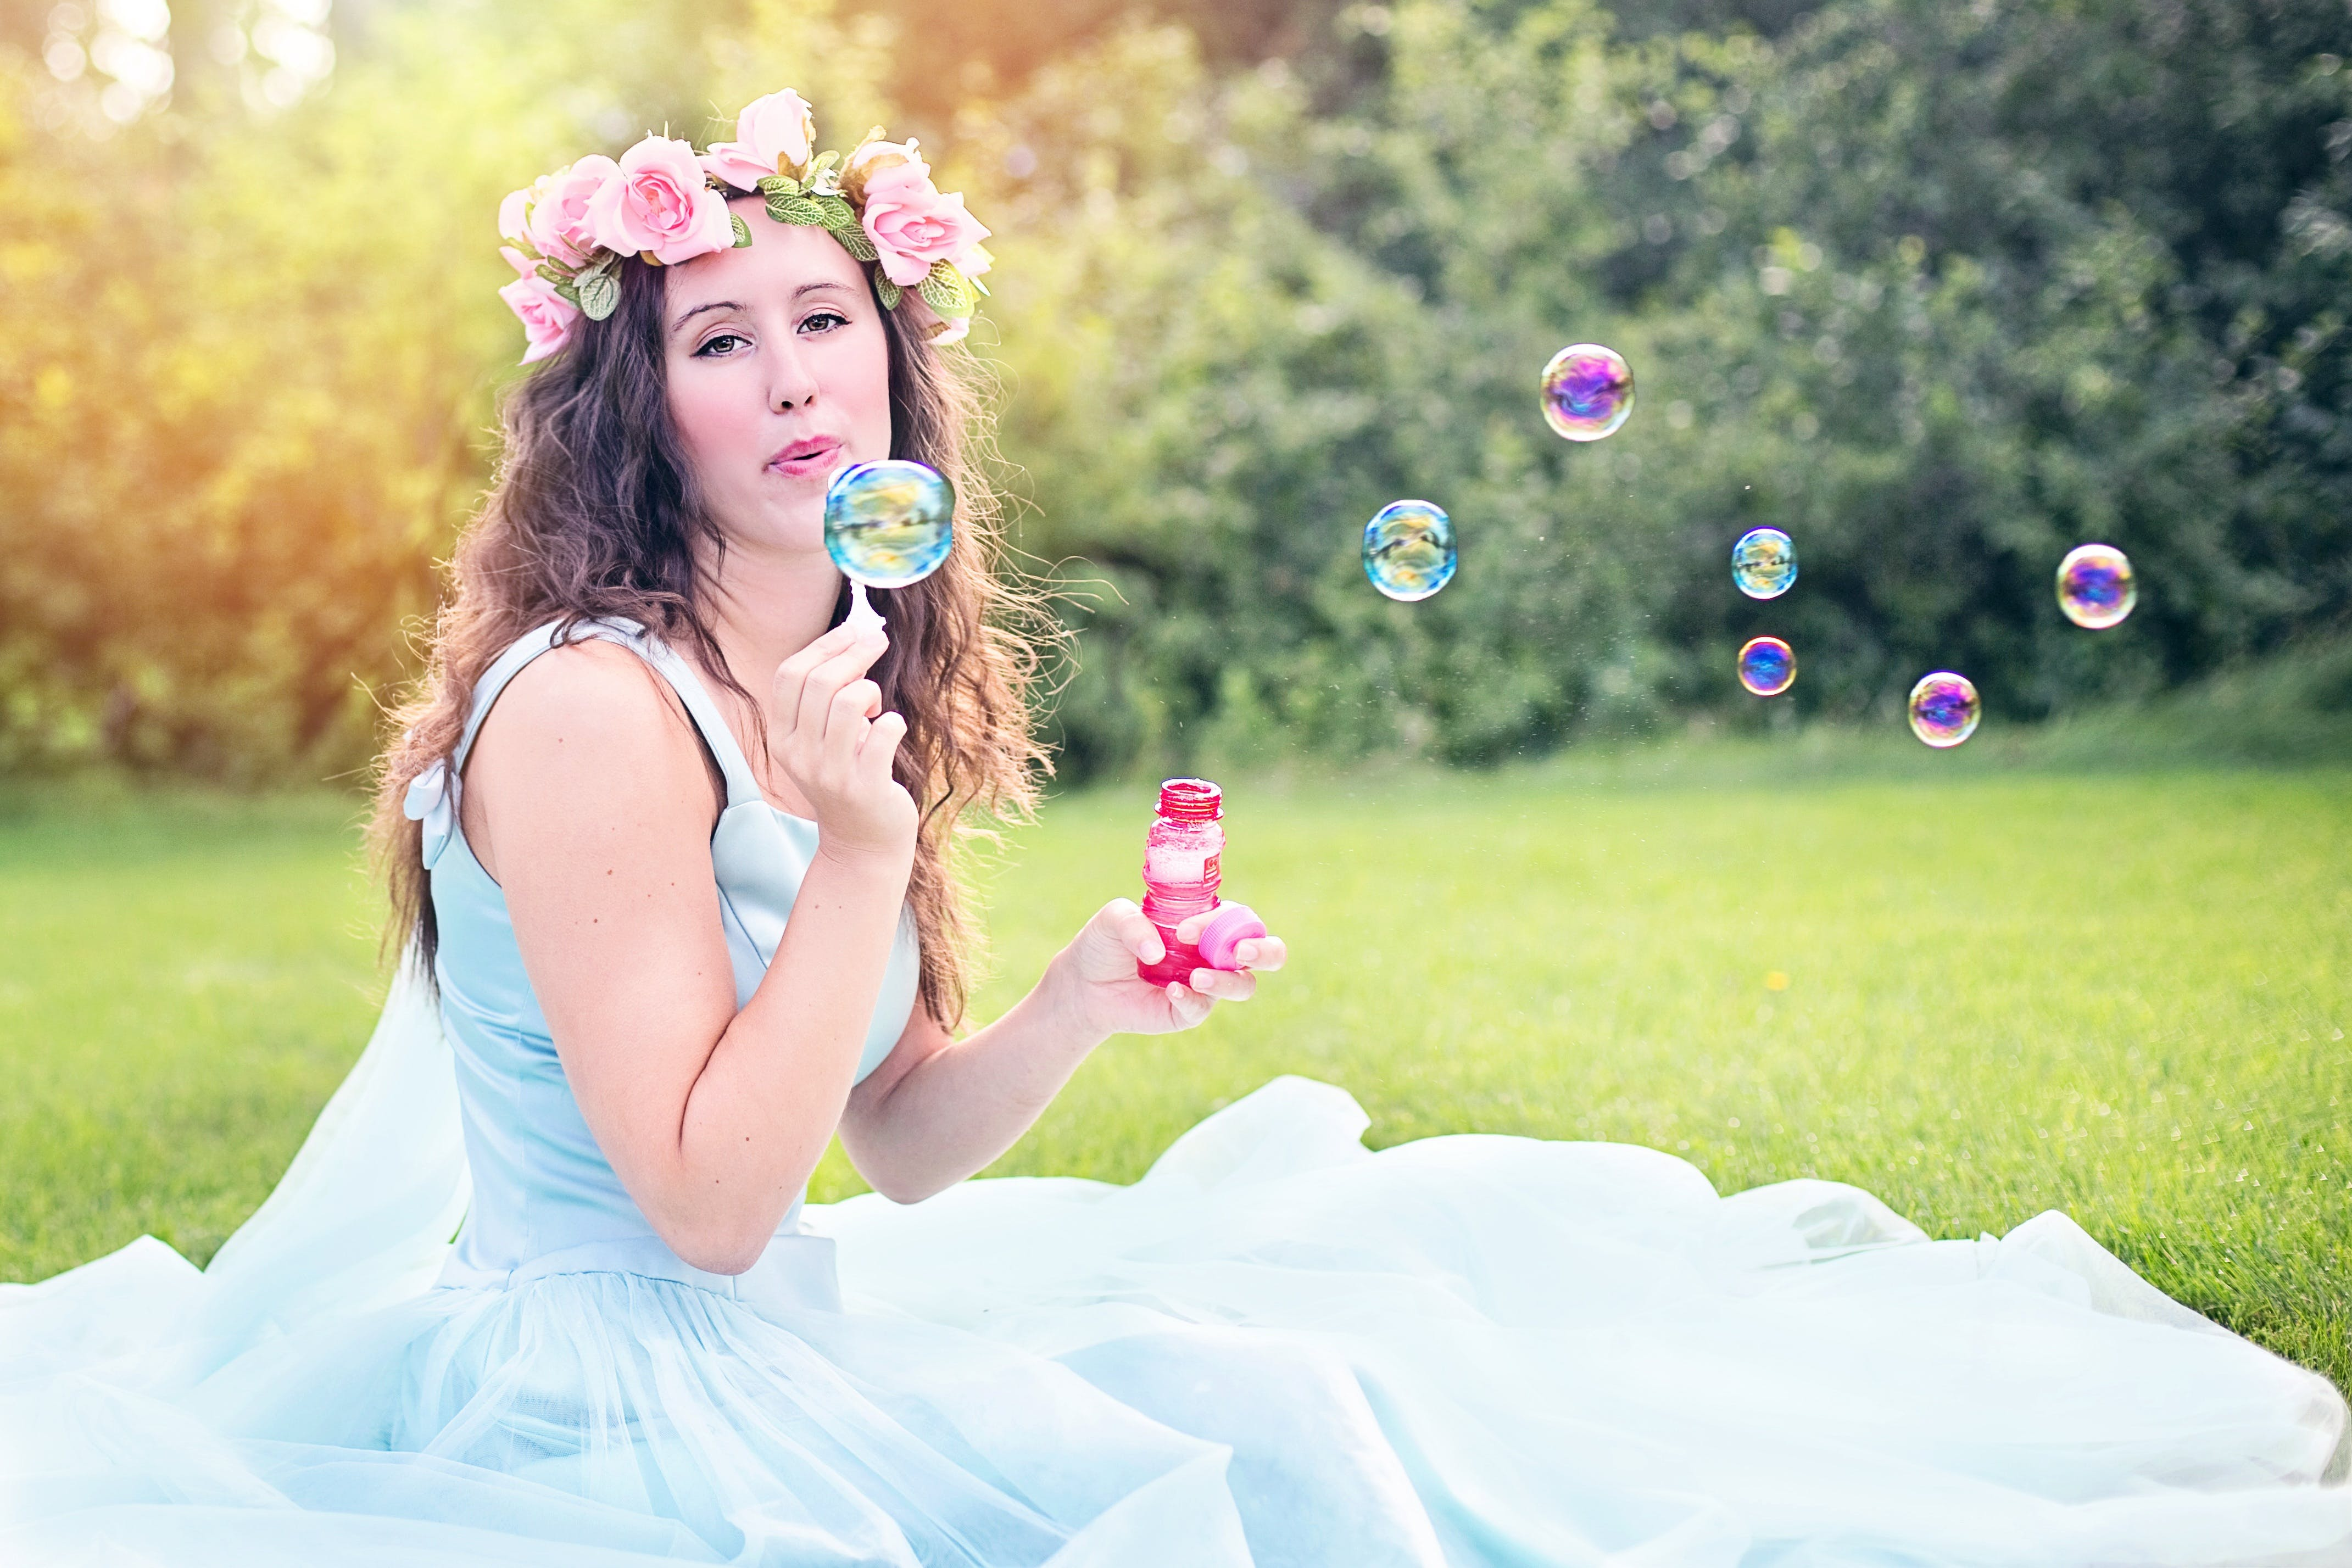 Woman Sitting on Grass Blowing Bubbles